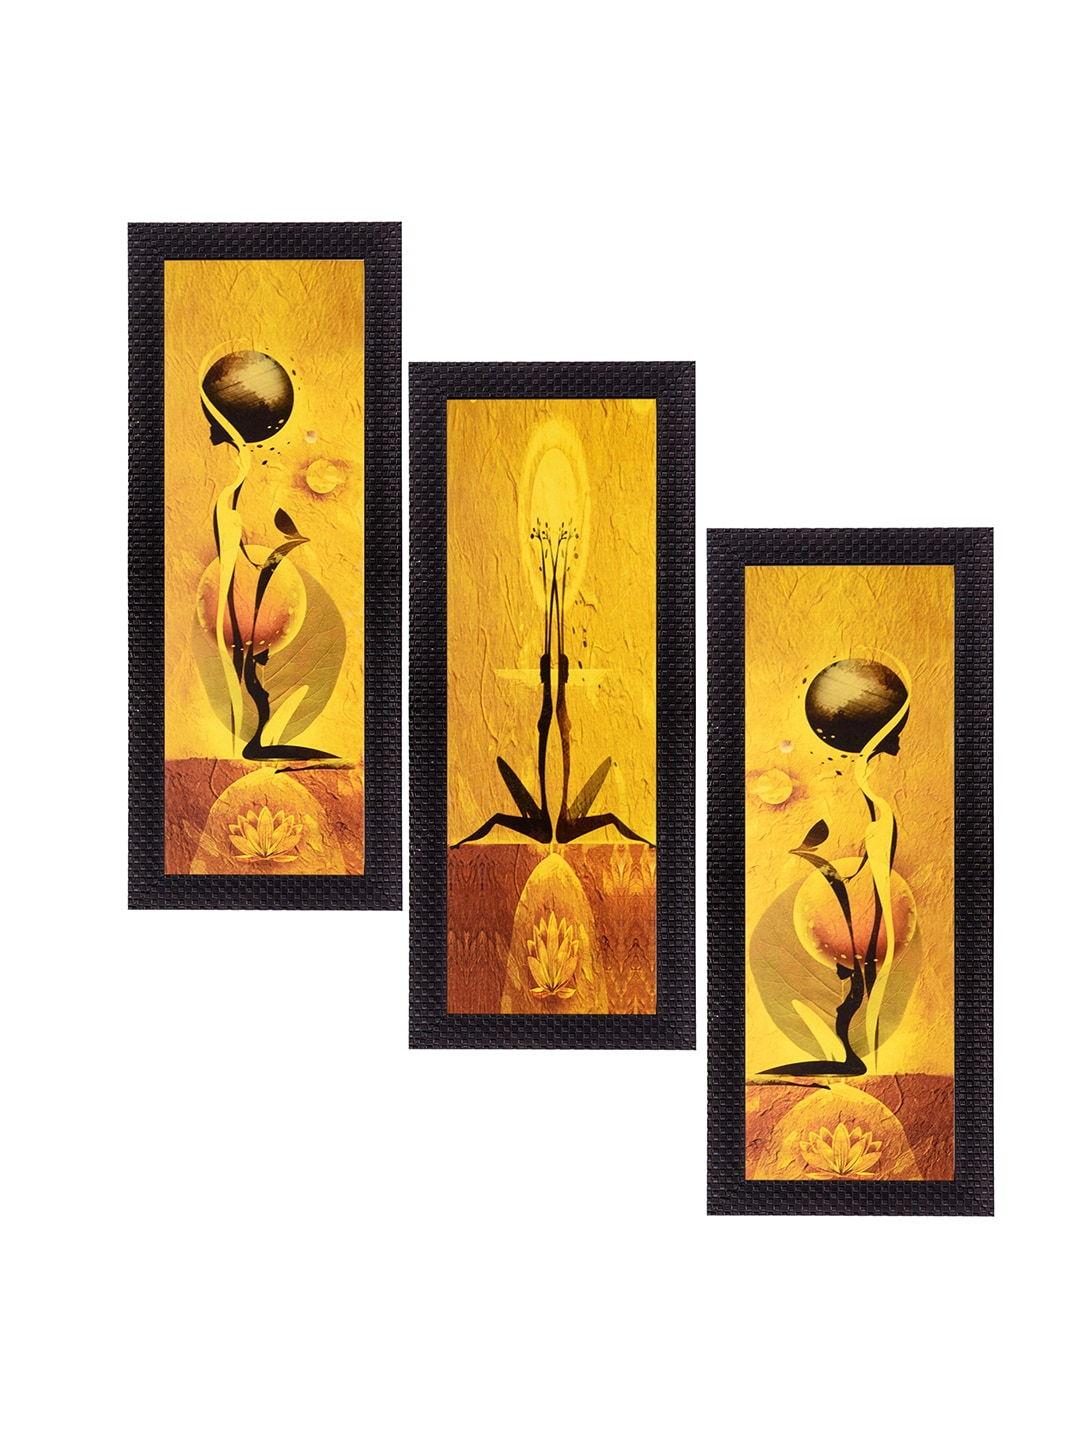 f02c2f8e257 Wall Art - Buy Wall Arts Online at Best Price in India